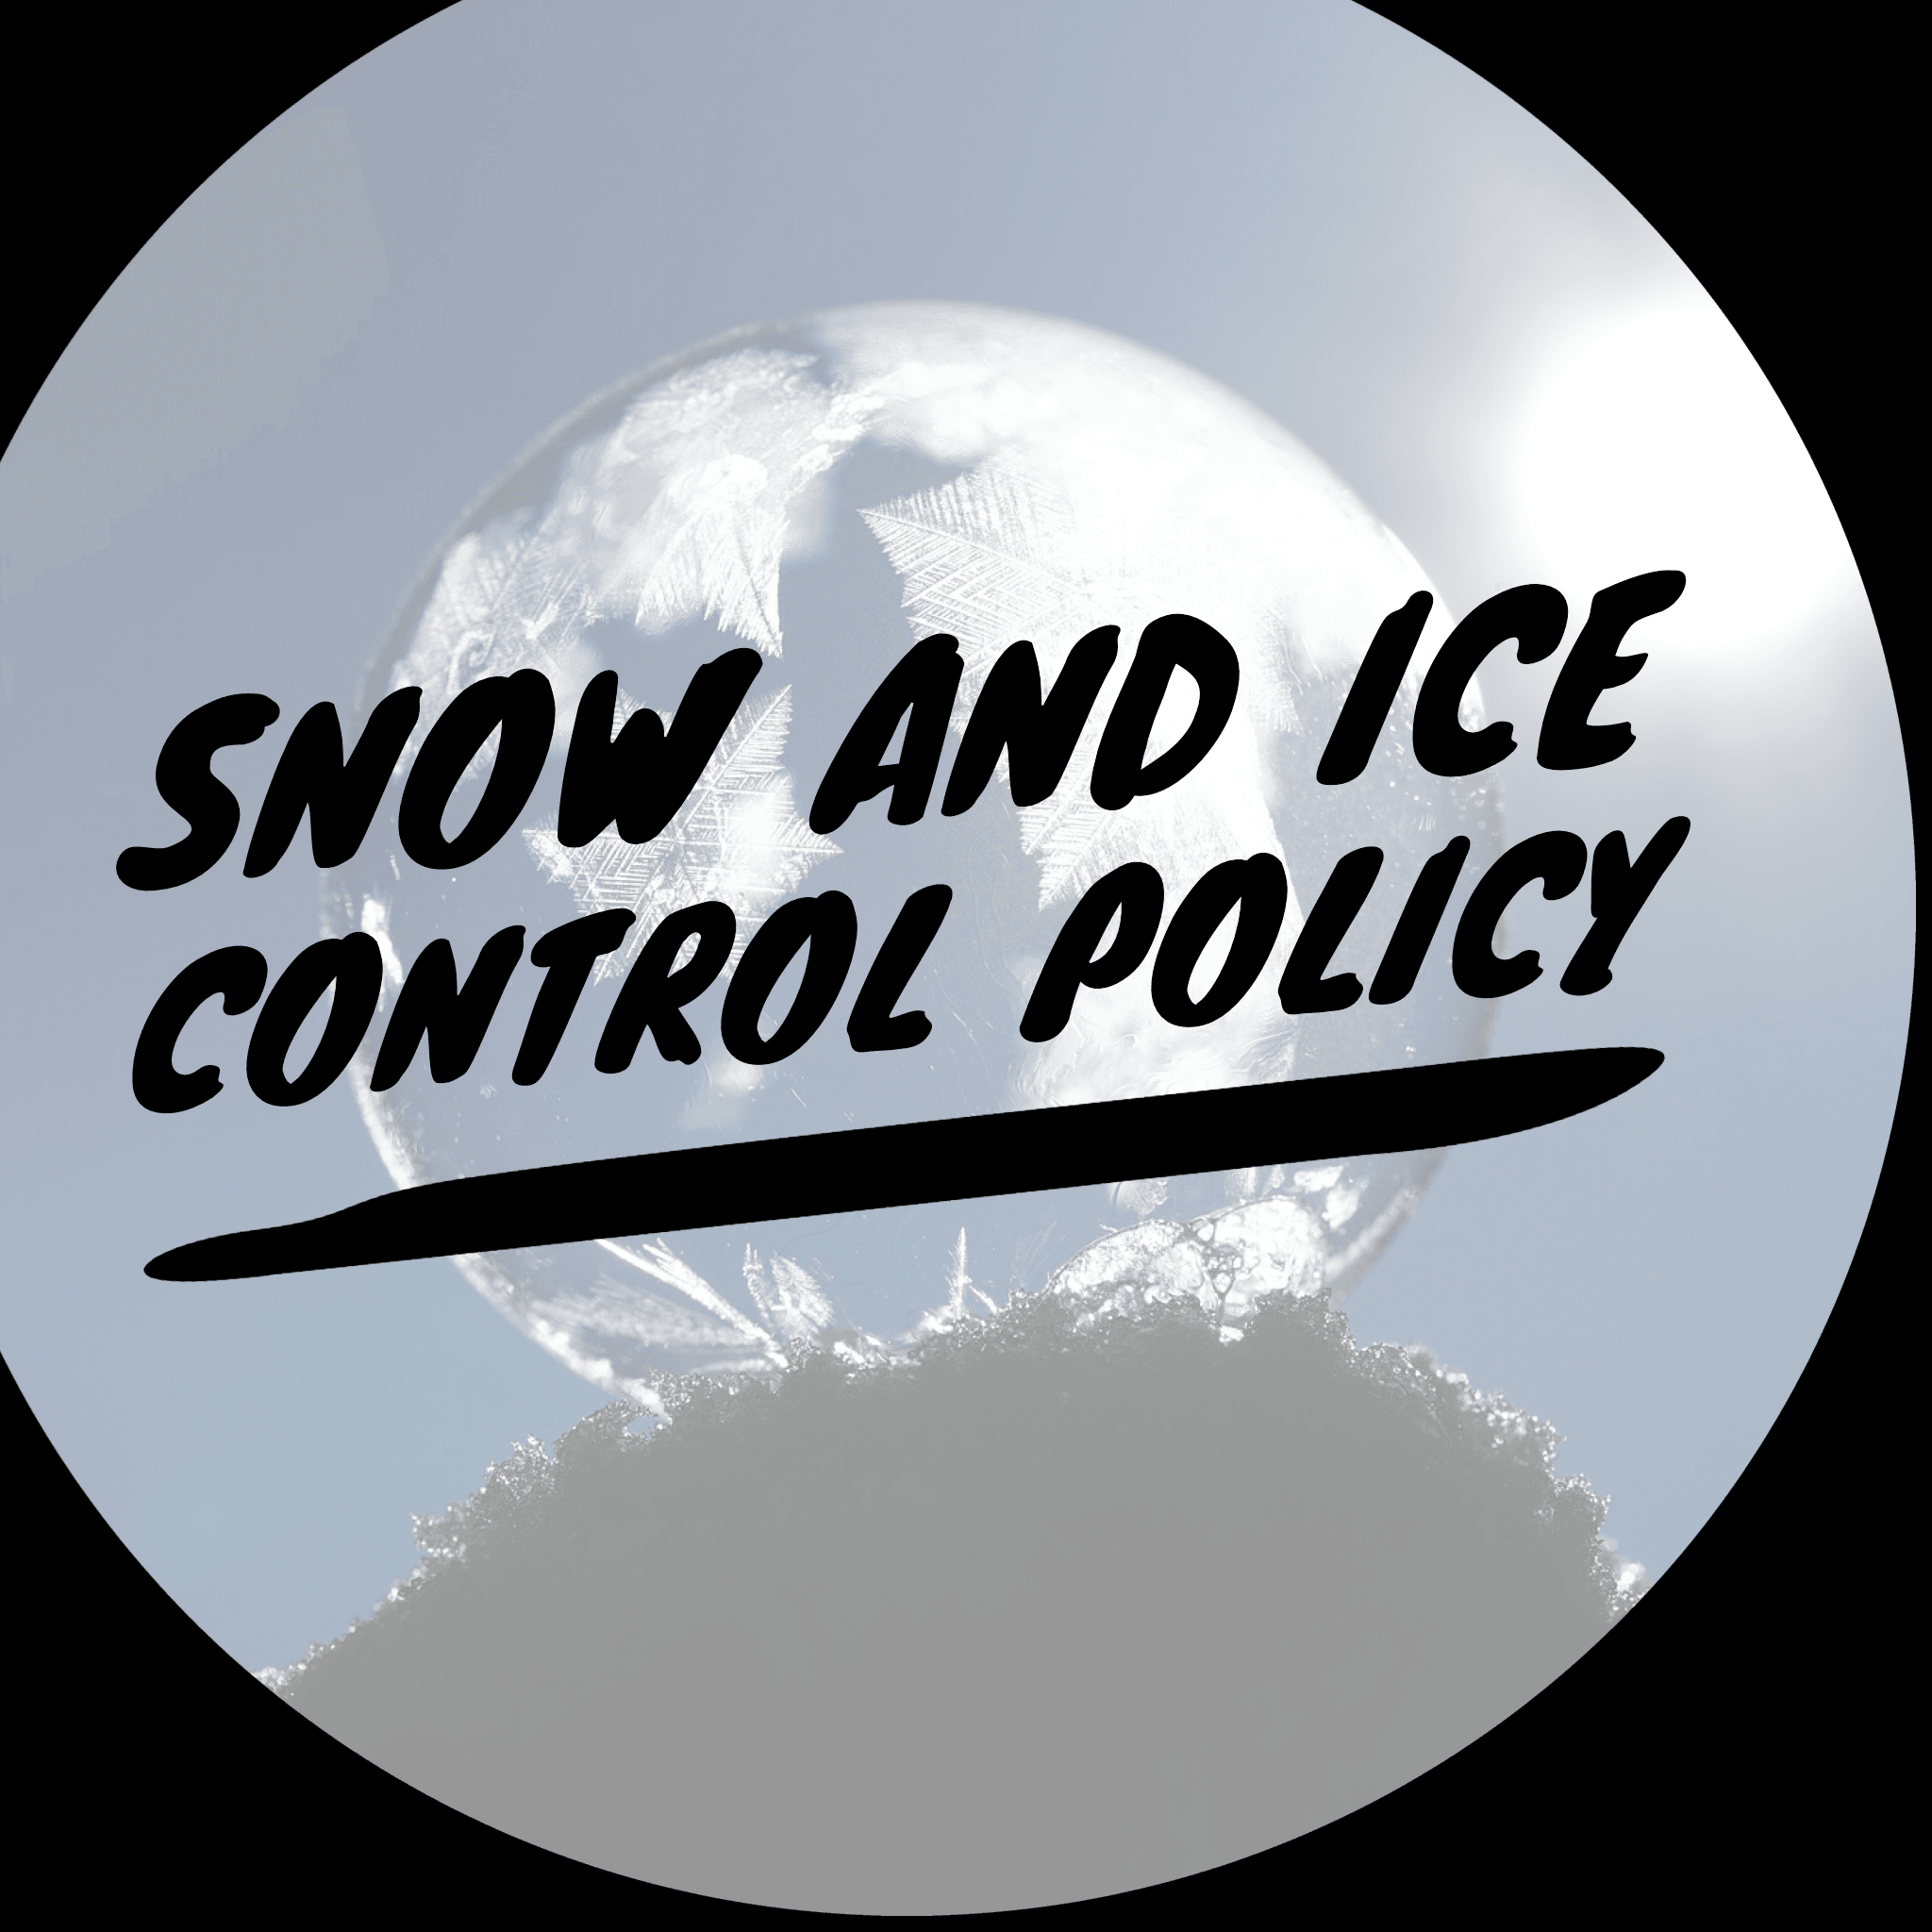 Snow and Ice Control Poliay